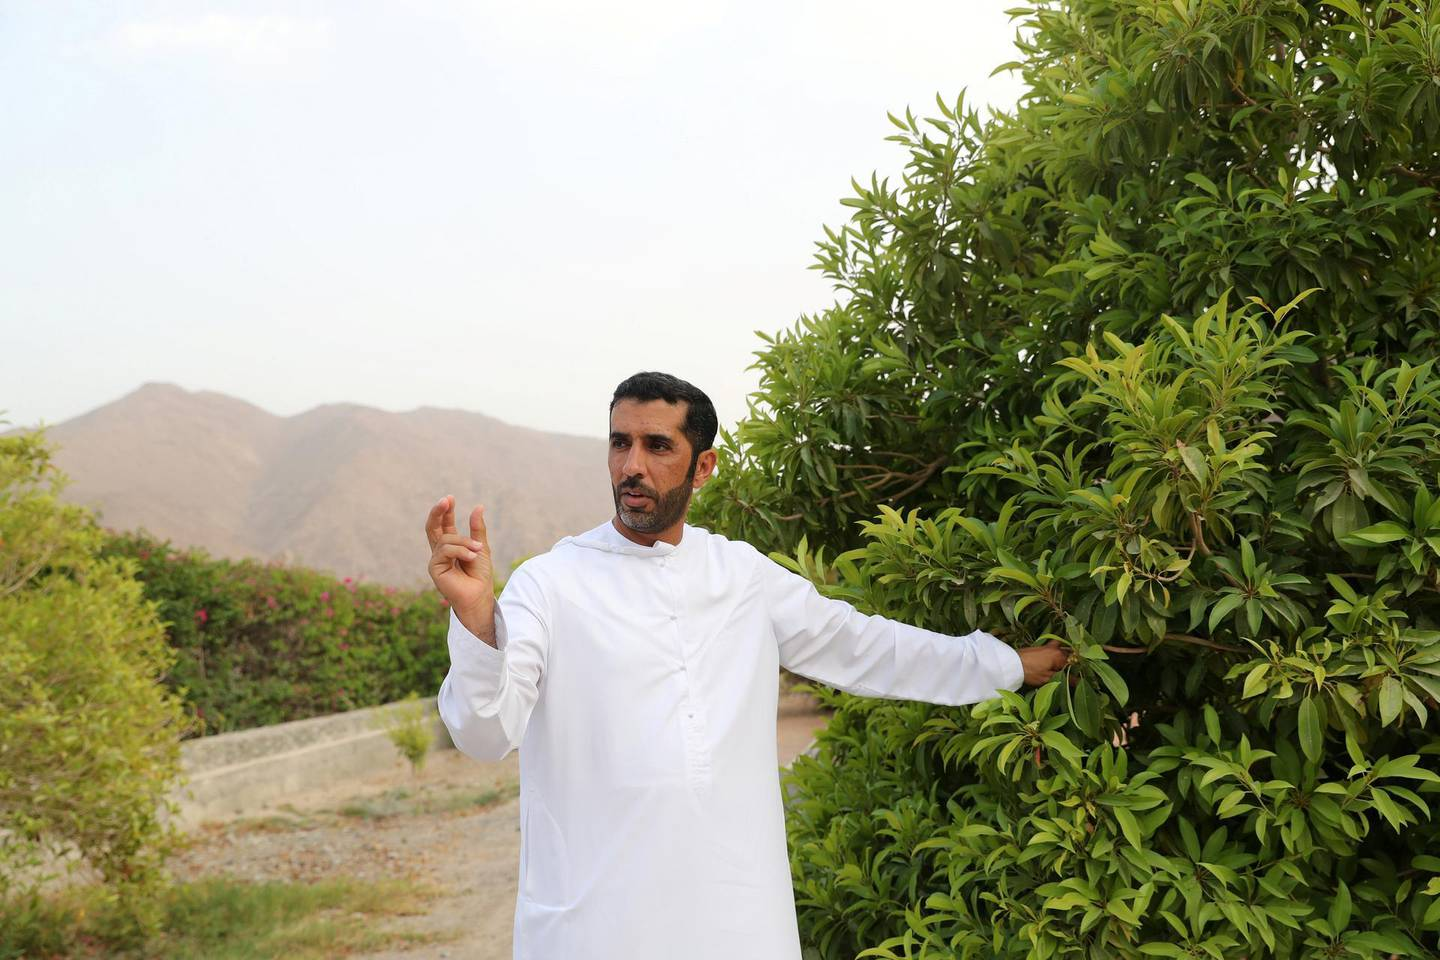 Sharjah, United Arab Emirates - September 24, 2018: Ali Al Mazroui. Neighbourhood watch series. Wadi Al Helo town also known as sweet valley. Residents talking about the town, archaeological site and the valley. Monday, September 24th, 2018 at Wadi Al Helo, Sharjah. Chris Whiteoak / The National